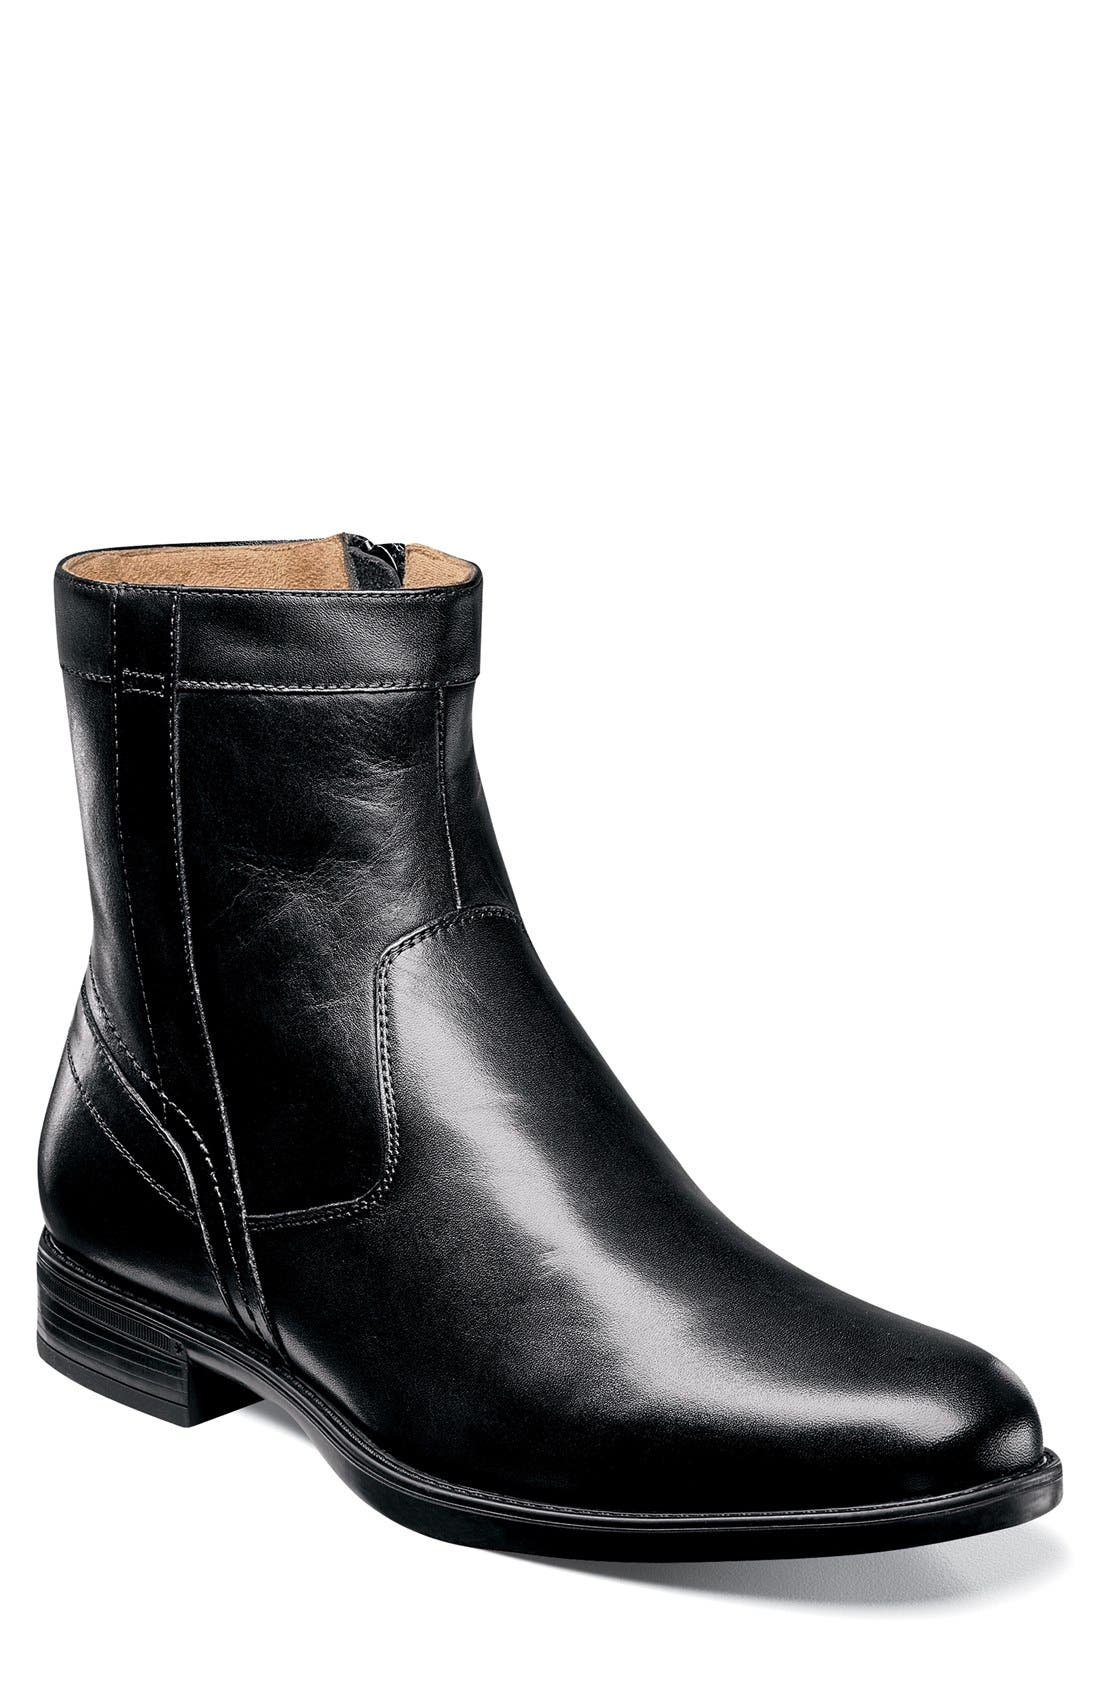 'Midtown' Zip Boot,                         Main,                         color, BLACK LEATHER